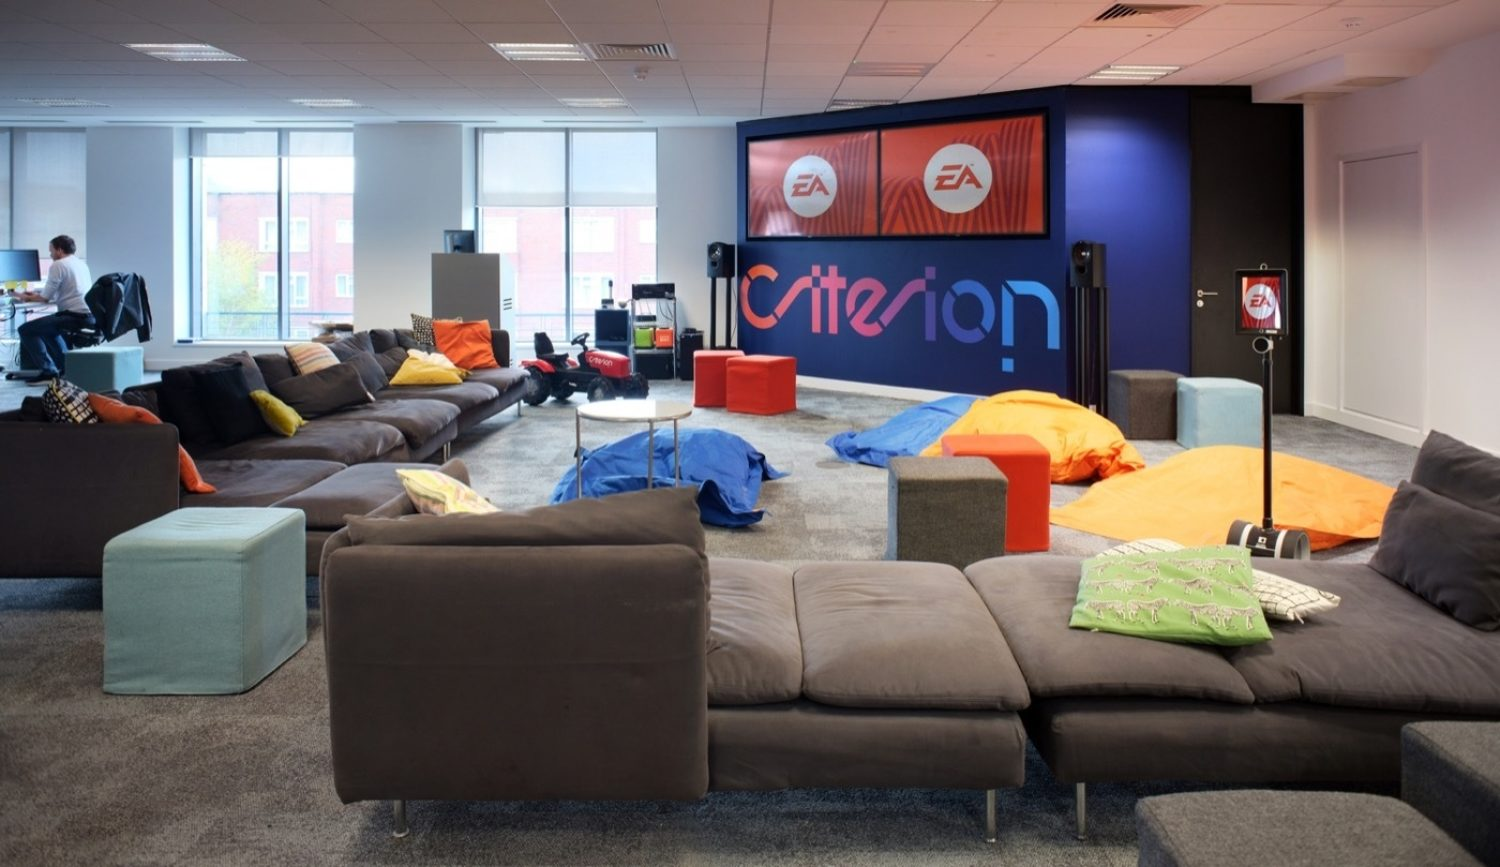 EA office breakout space fit out